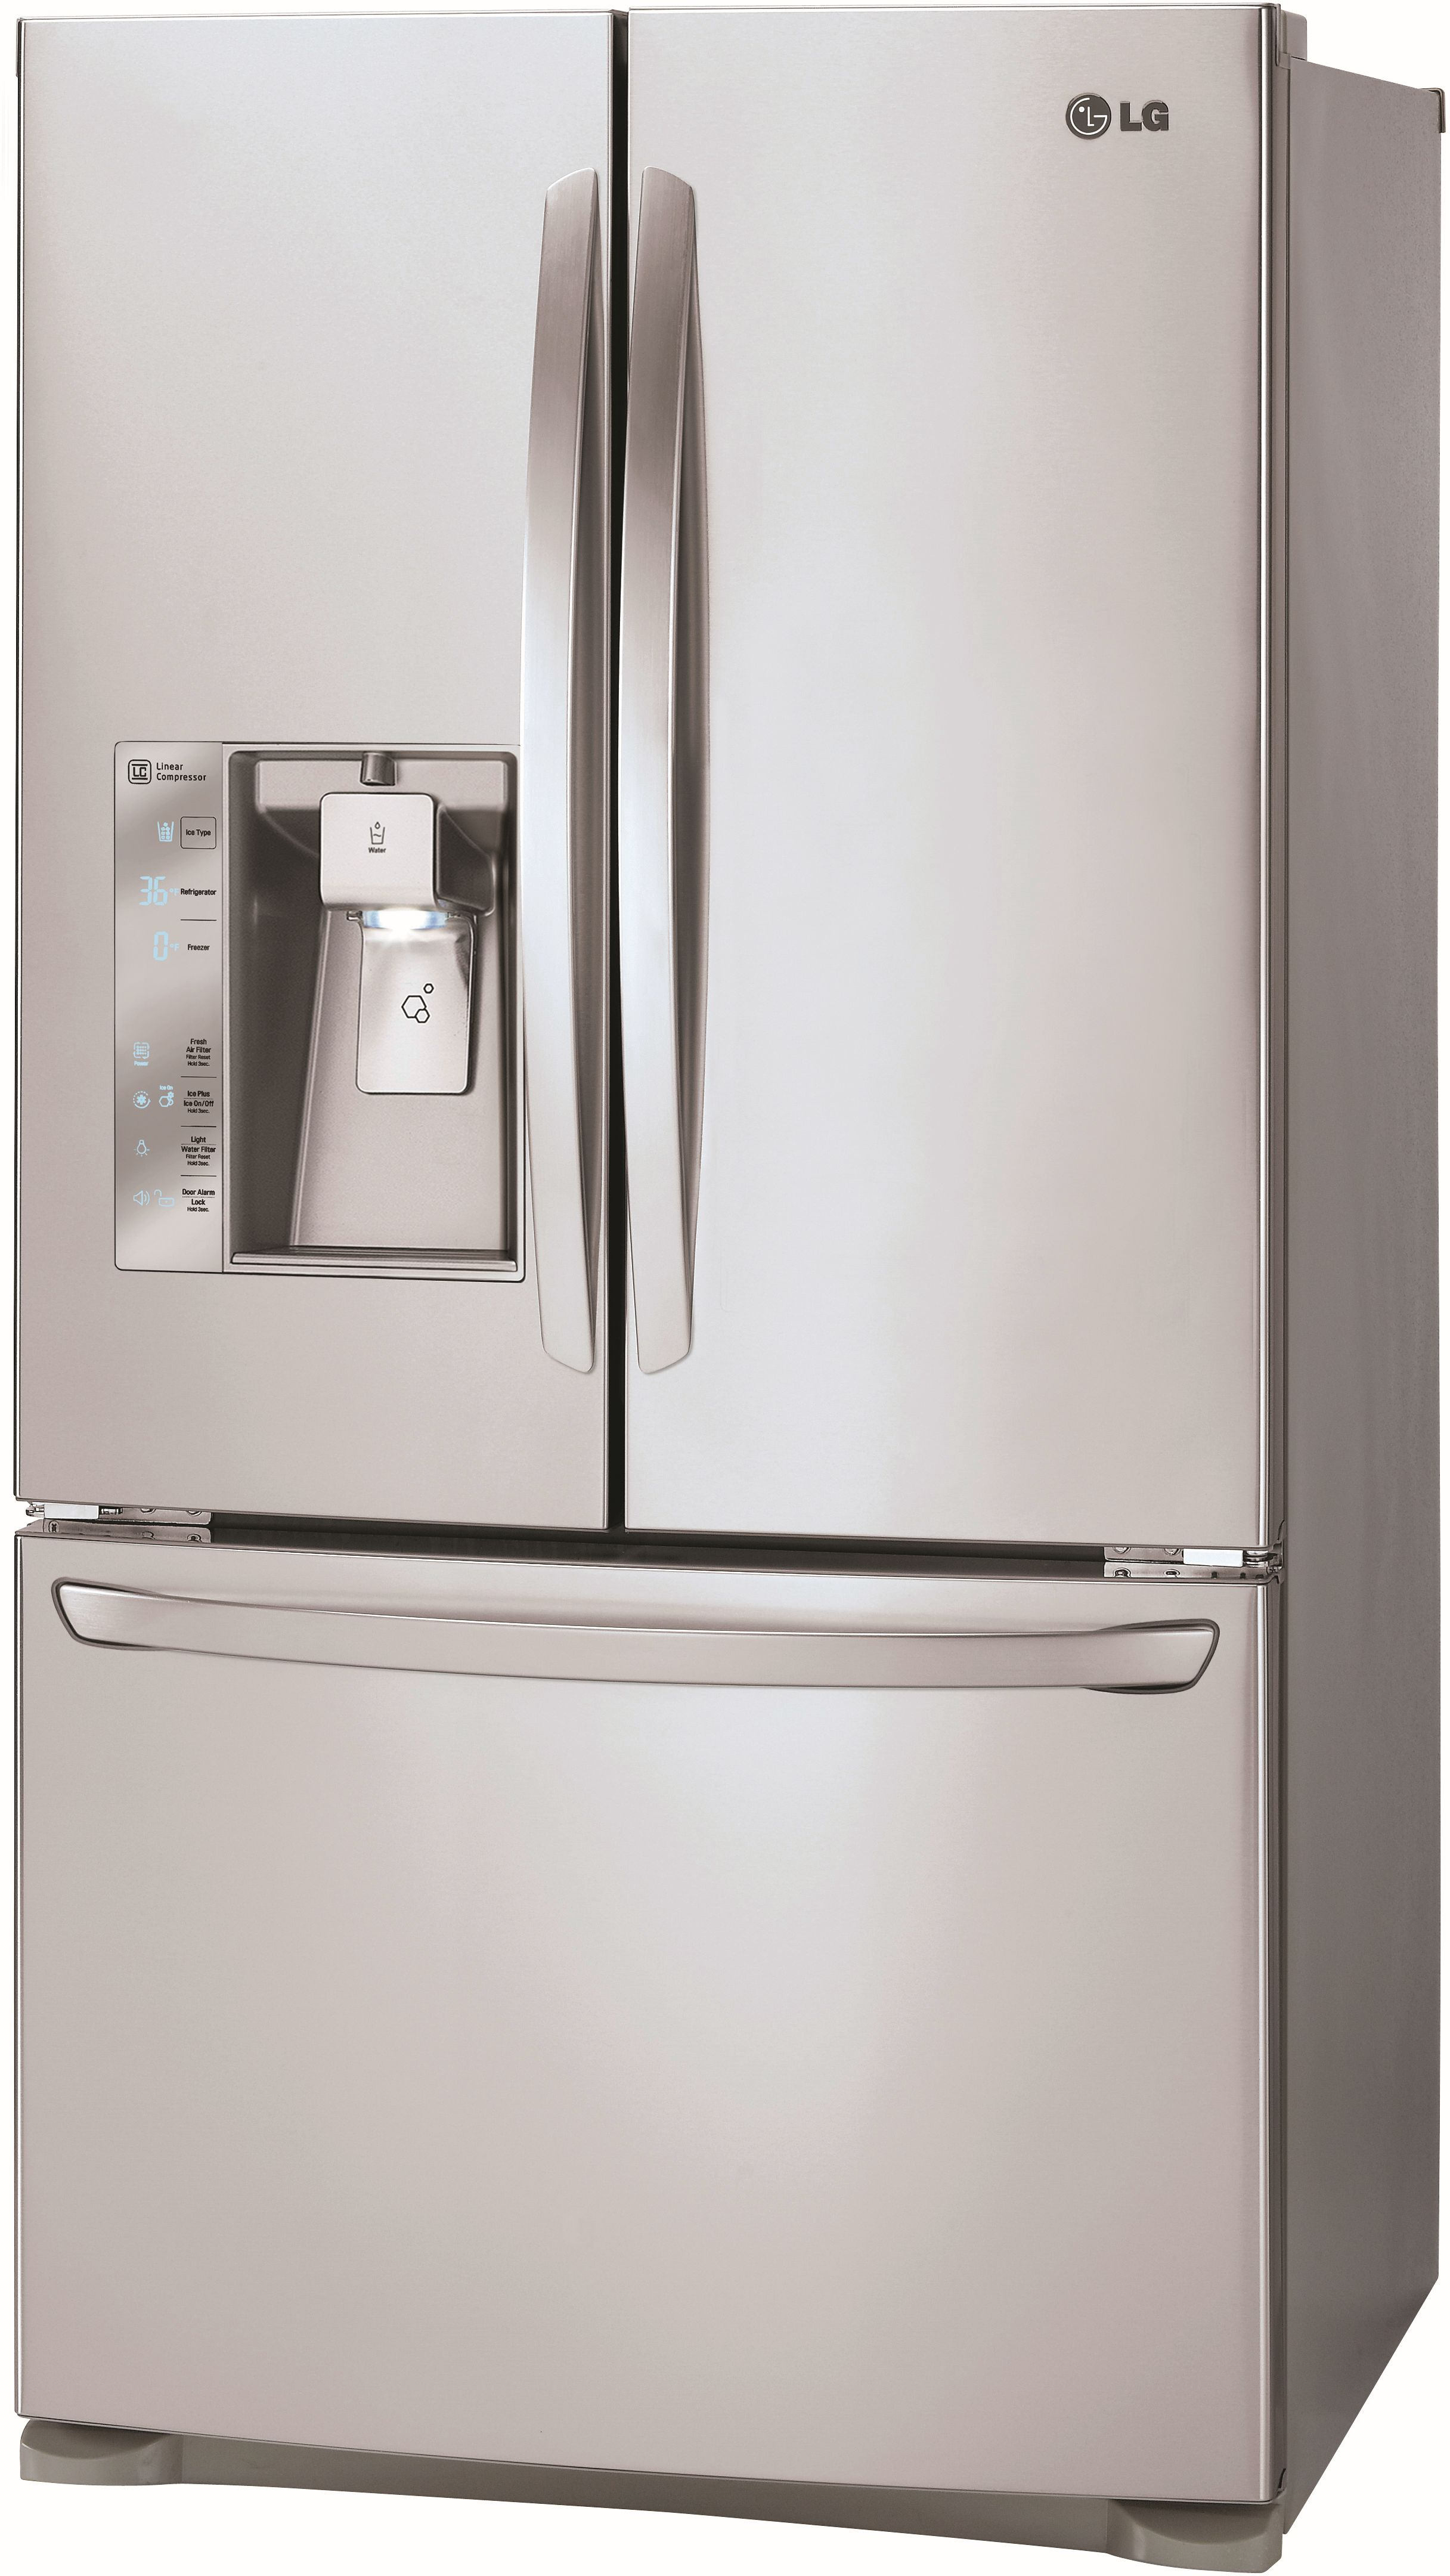 LG 24 Cu. Ft. French Door Refrigerator Stainless Steel LFXC24726S